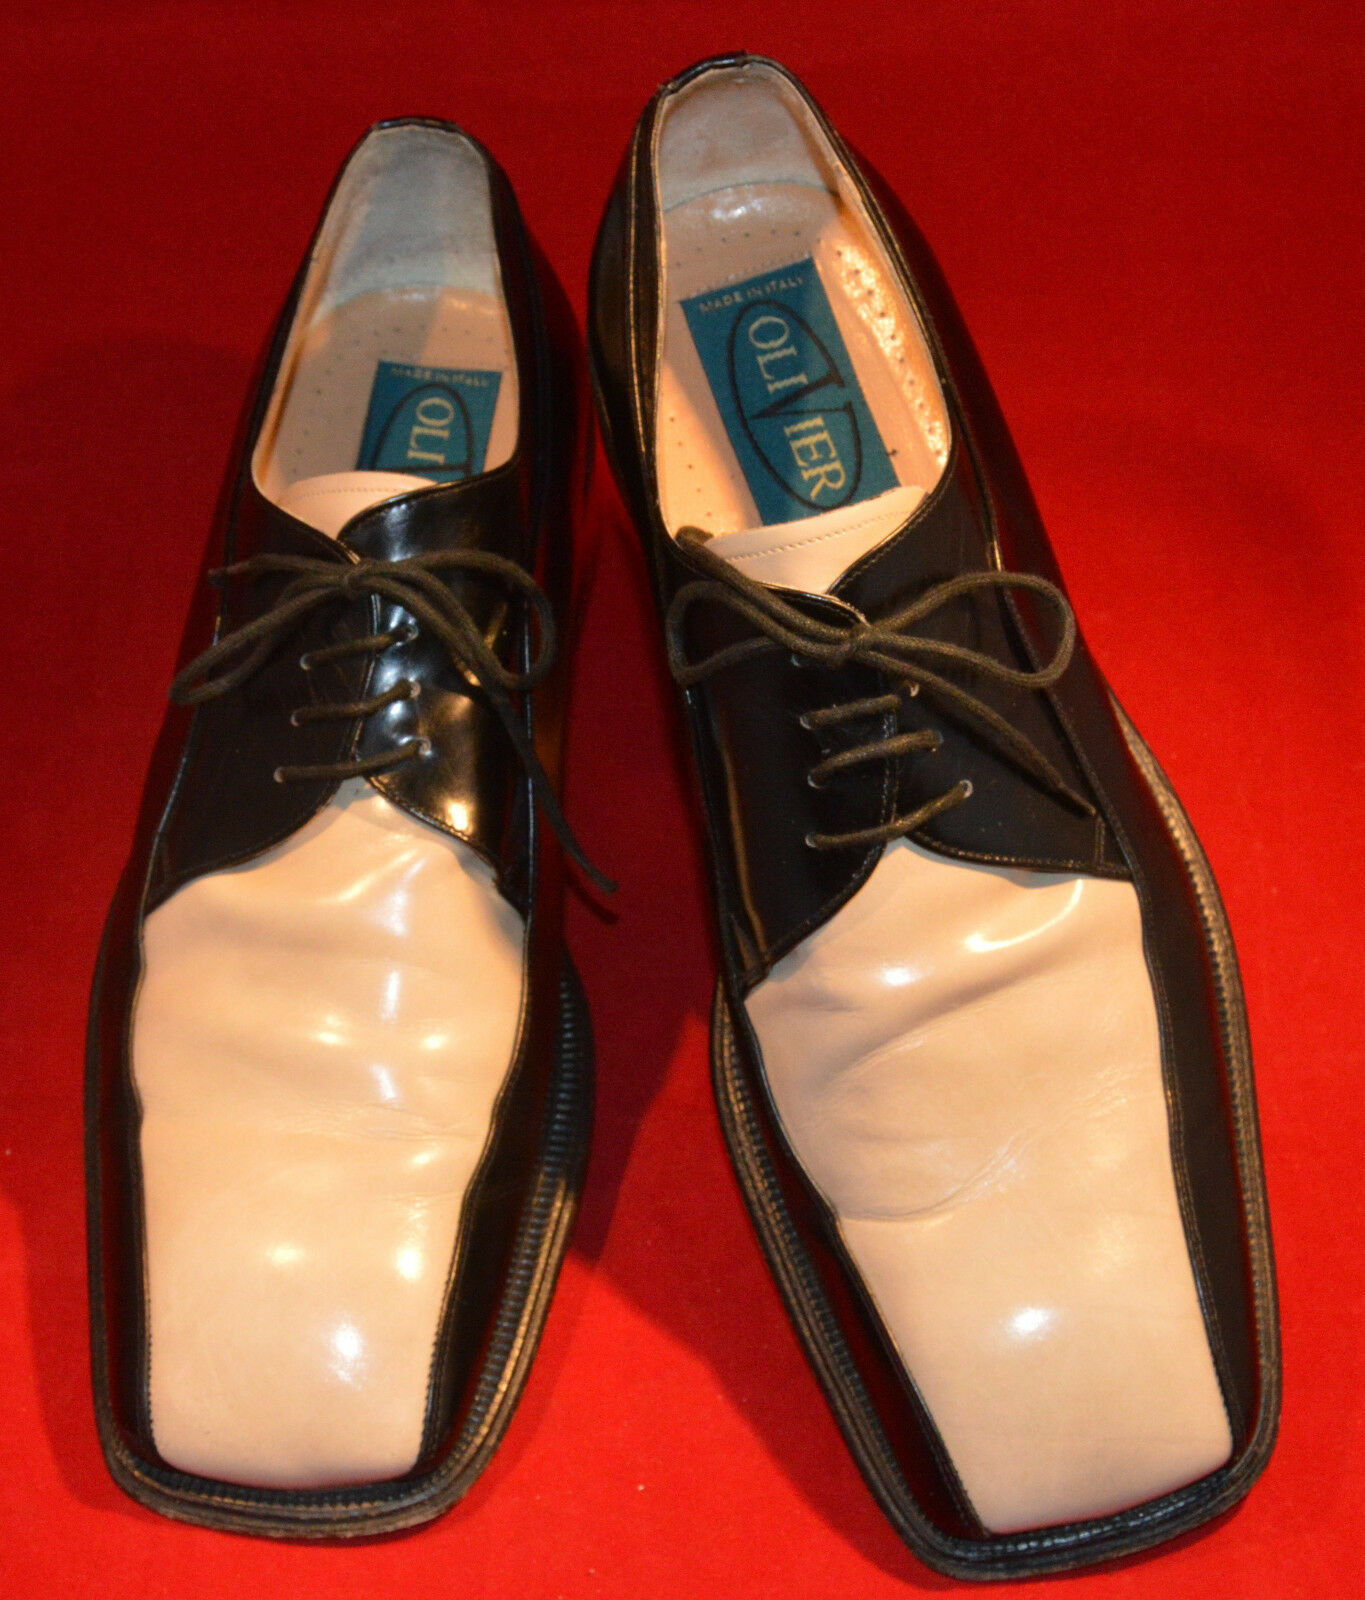 Men's new shoes shoes, OliVier, Black and Bone Size 11